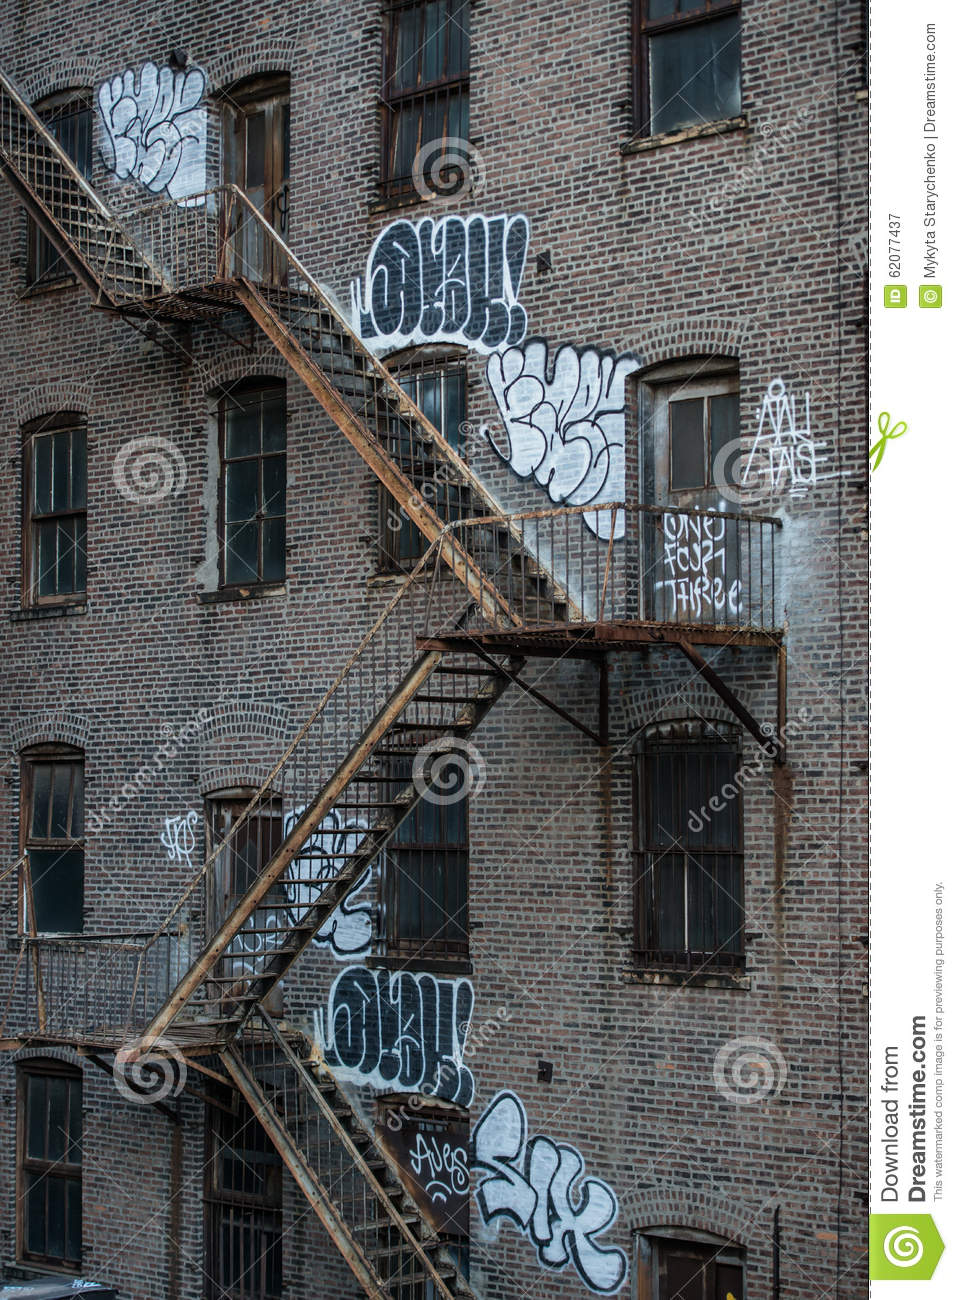 Fire Escape Stairs On An Old Building Exterior In New York, Manhattan